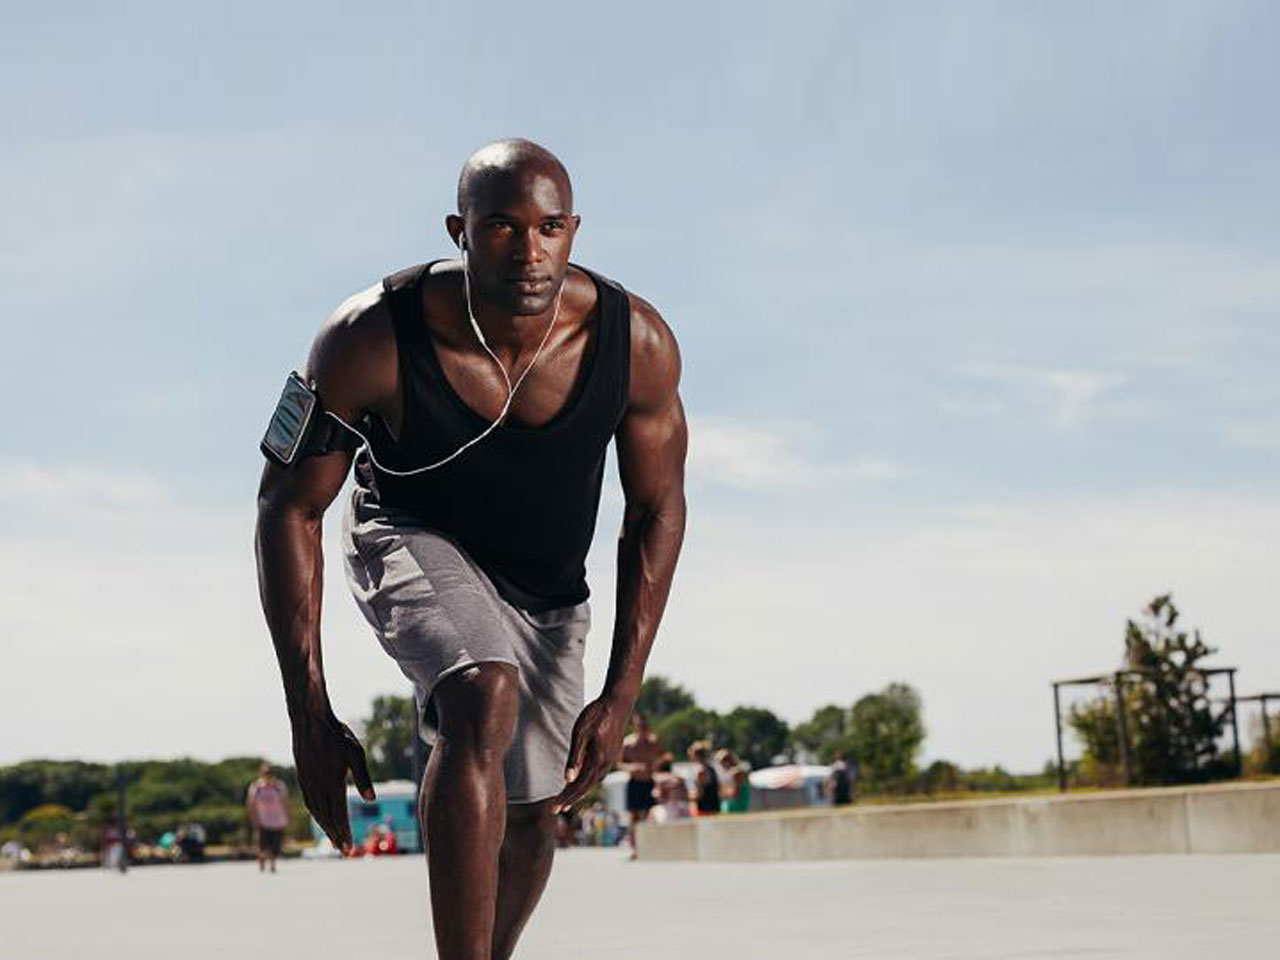 The ultimate workout program to be an all-around athlete